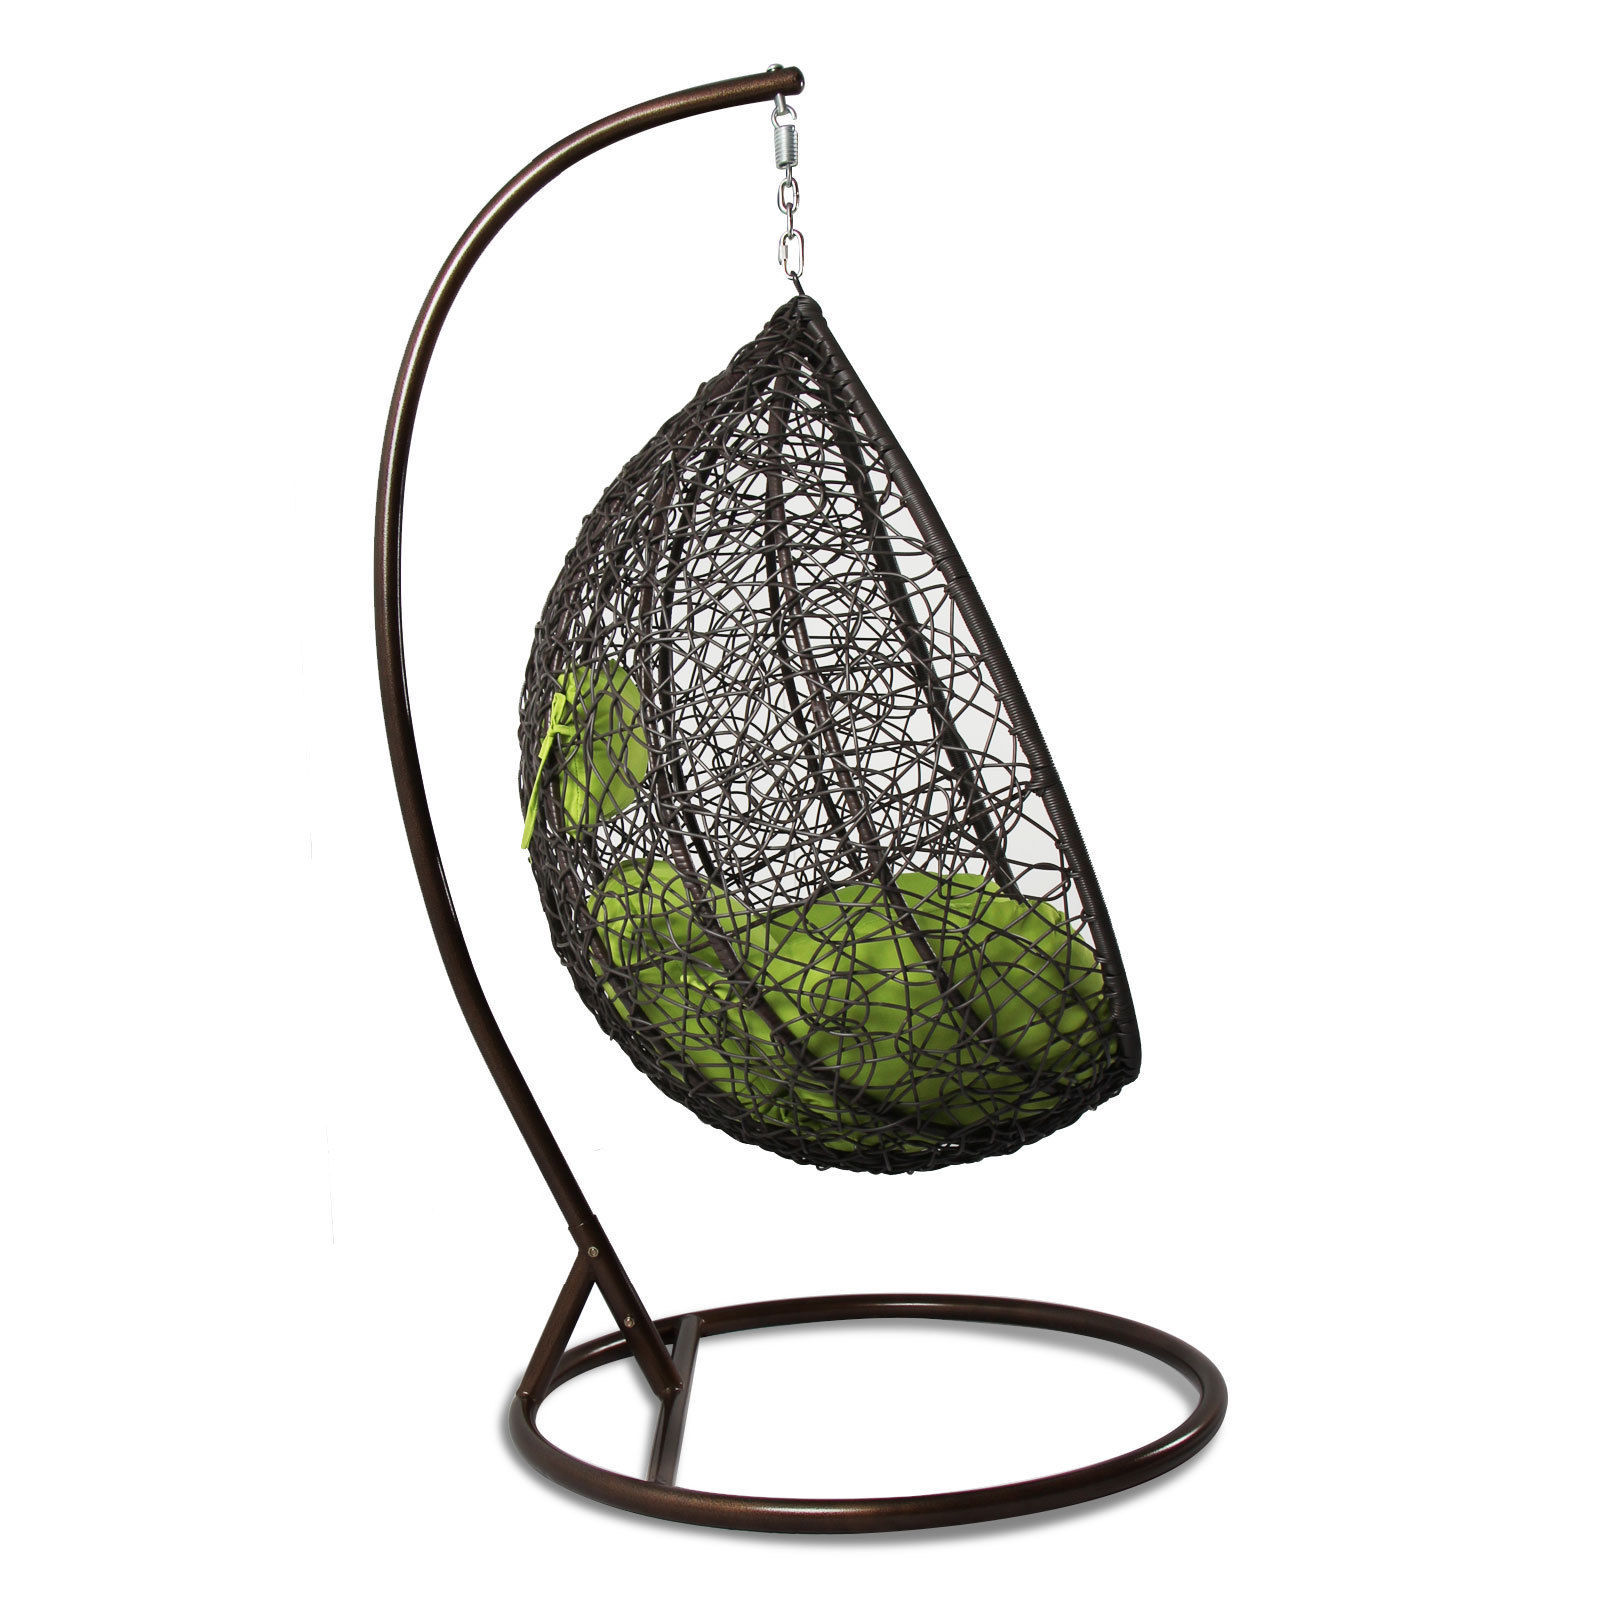 Hanging Hammock Proch Swing Chair Free Cover Outdoor Egg ...